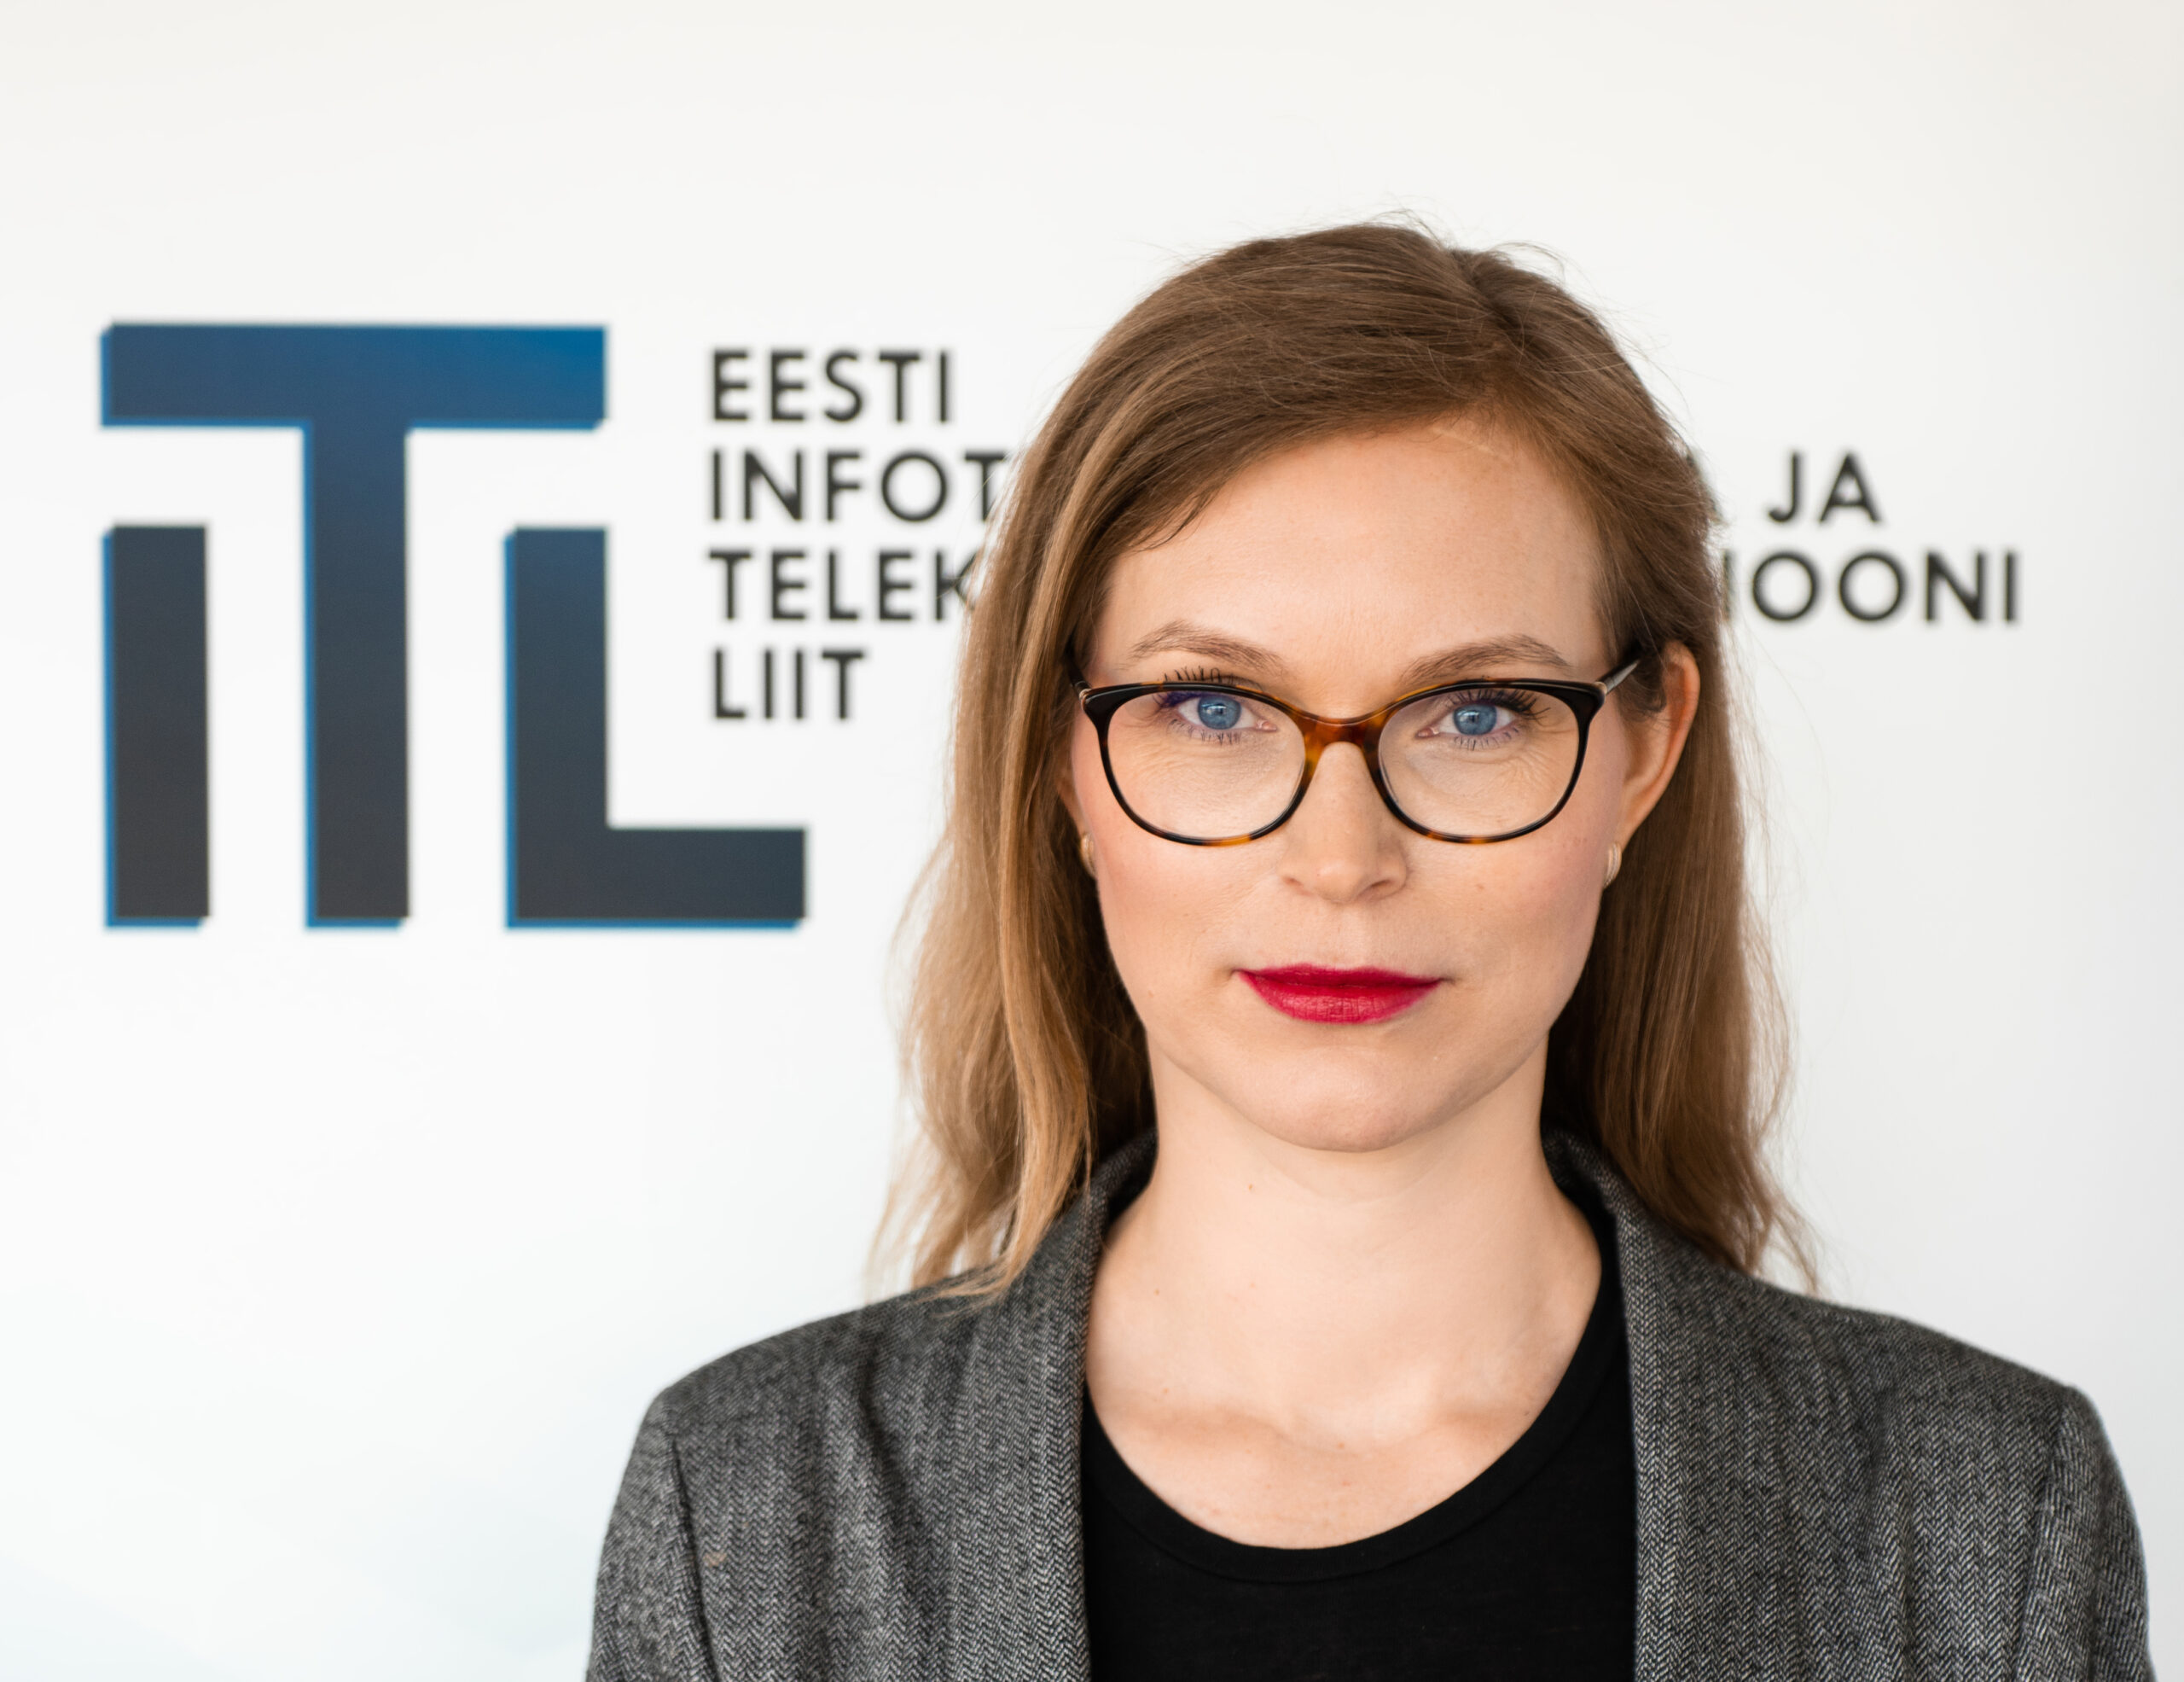 Anna-Greta Tsahkna, CEO of Timbeter elected as the vice-president of the Estonian IT and telecommunications association